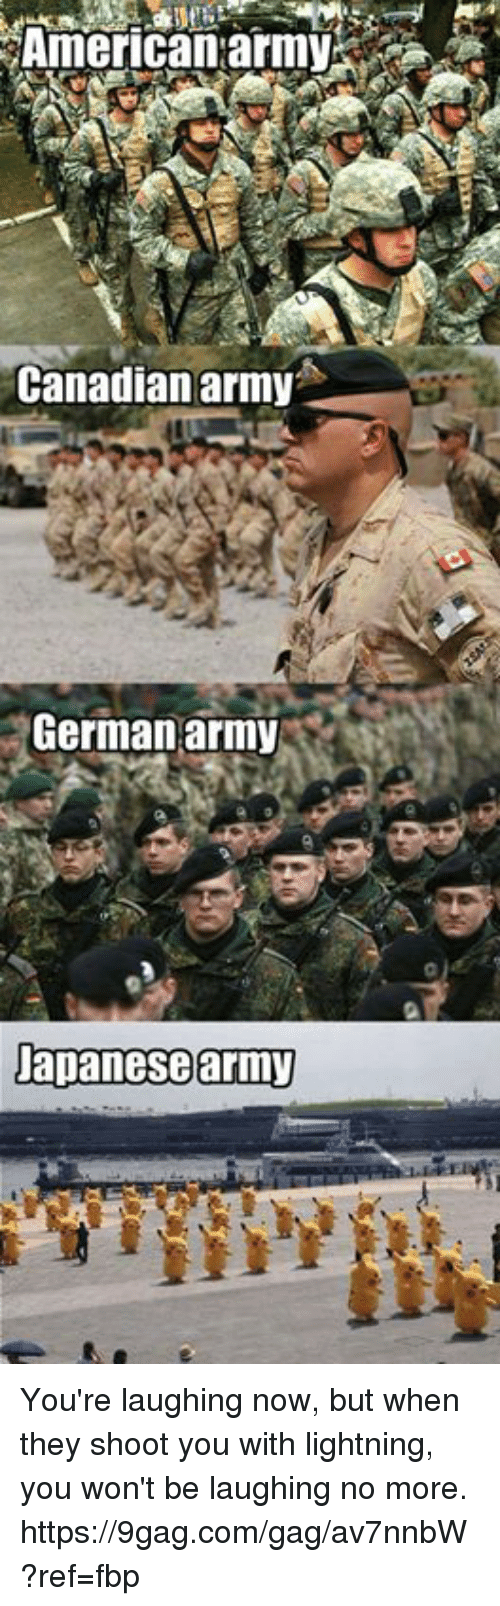 german army: American:army  Canadianarmy  German army  Dapanesearmy You're laughing now, but when they shoot you with lightning, you won't be laughing no more. https://9gag.com/gag/av7nnbW?ref=fbp